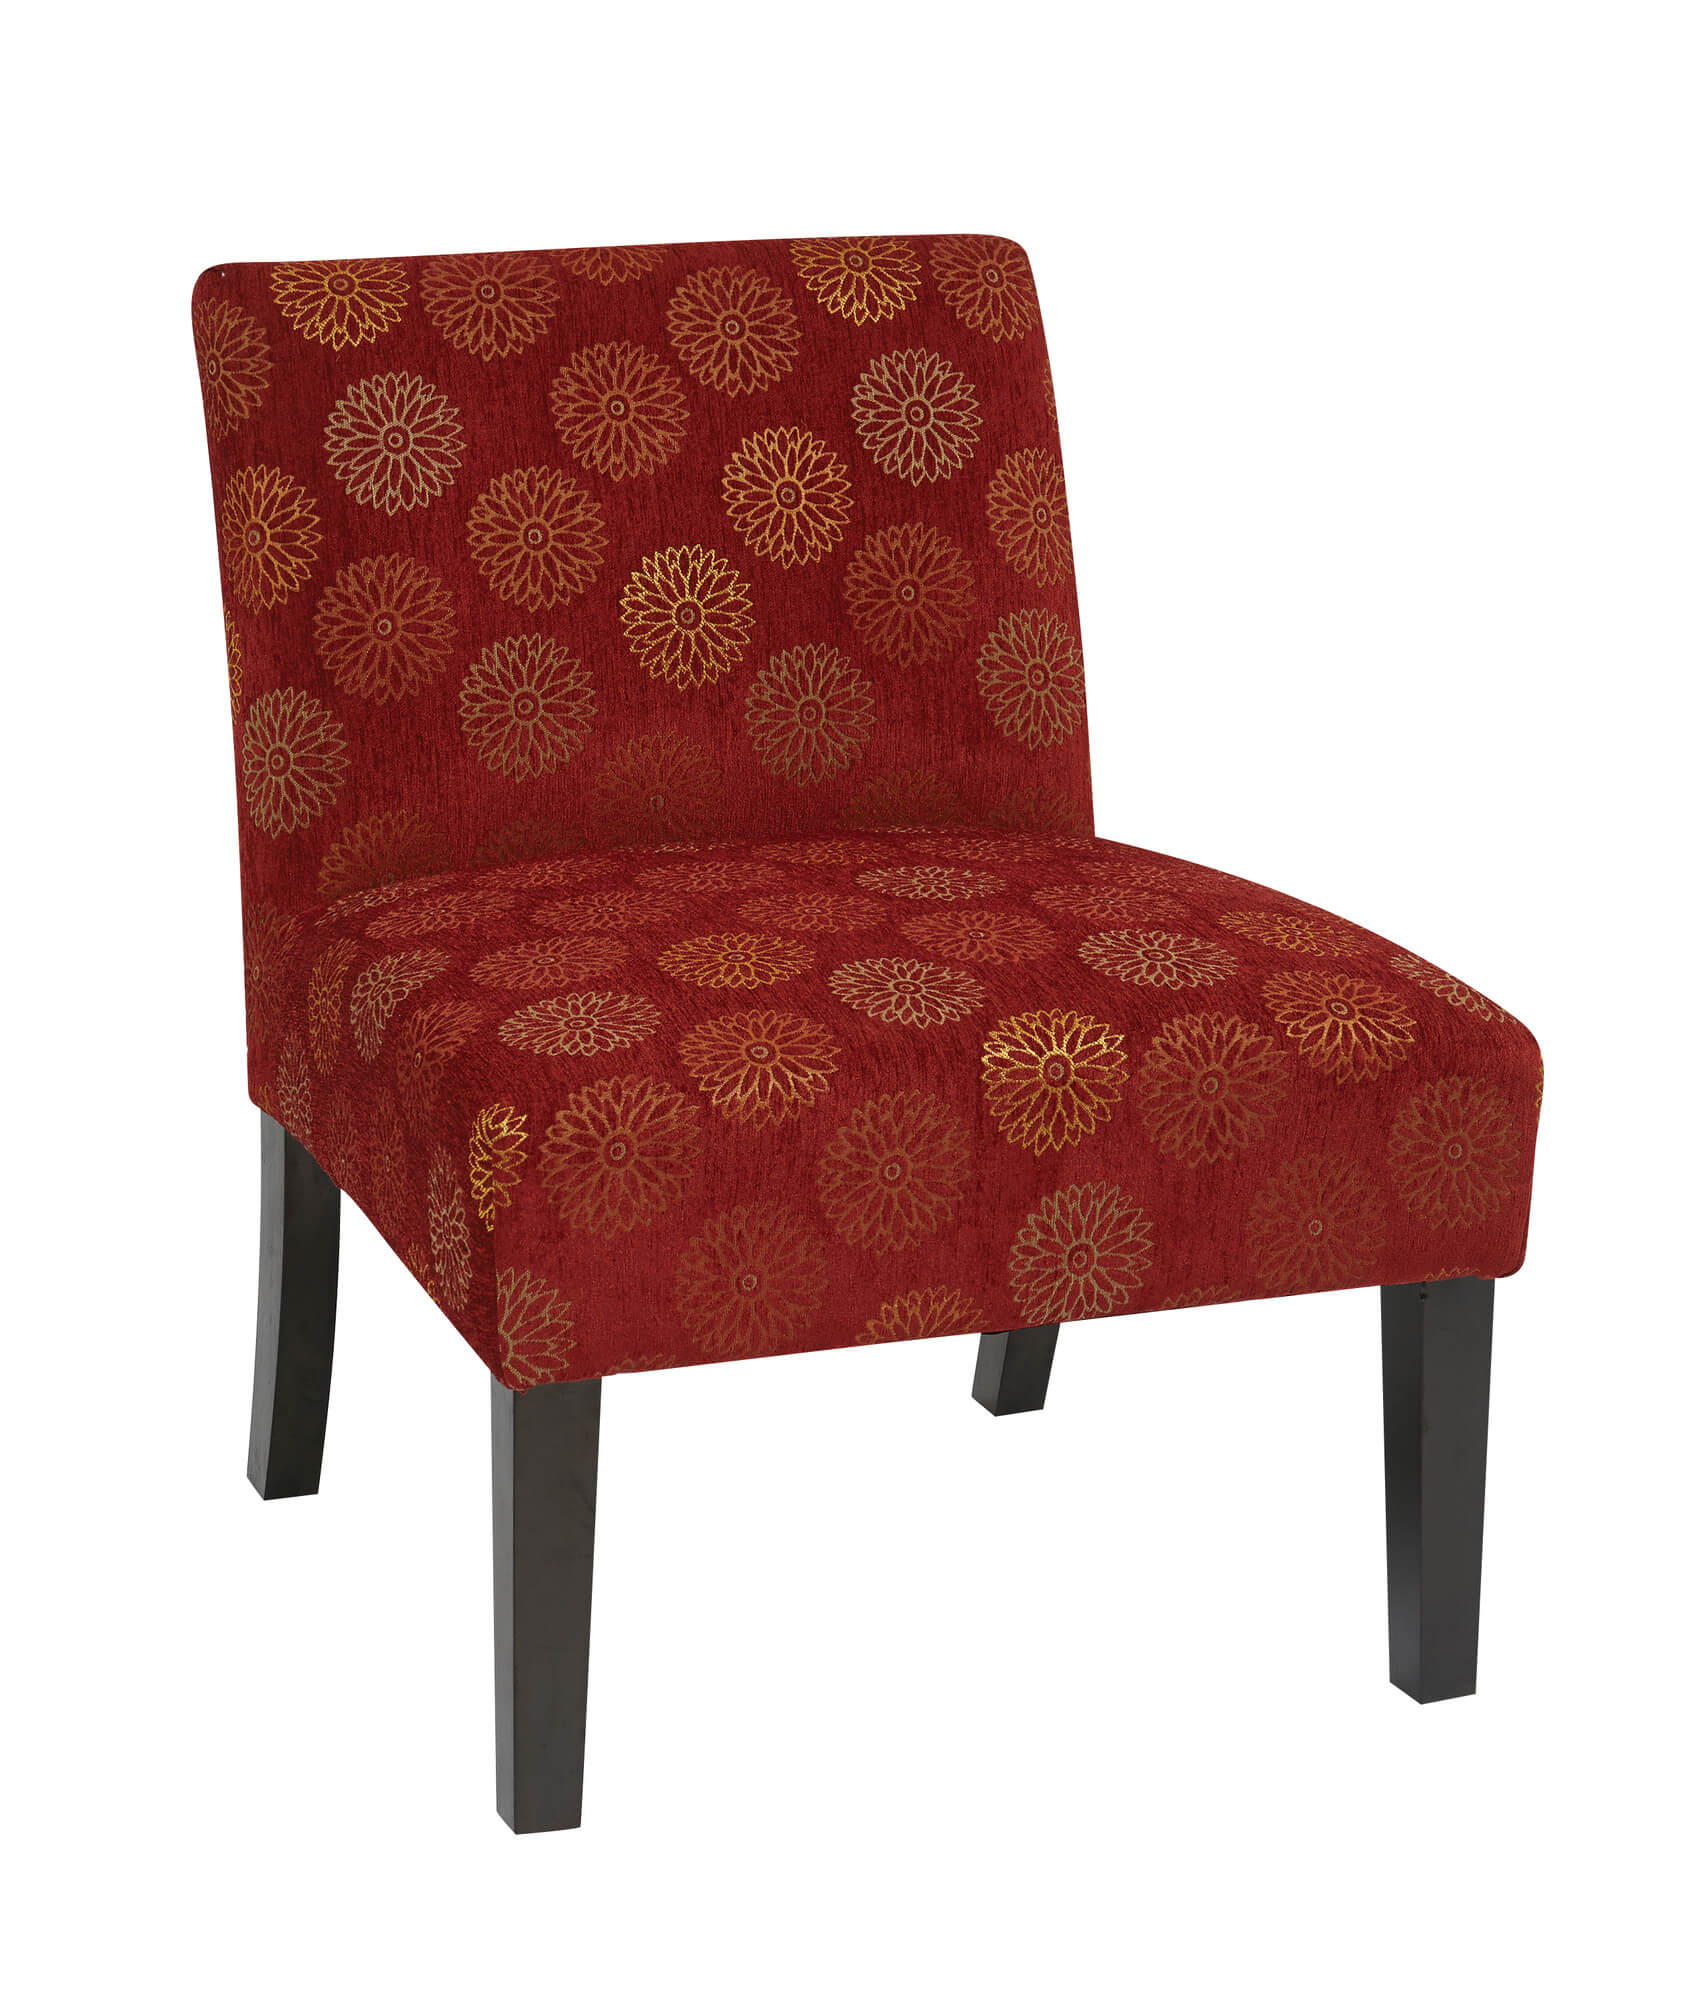 Hereu0027s A Classic Accent Chair In That It Offers A Splash Of Color To A Dark